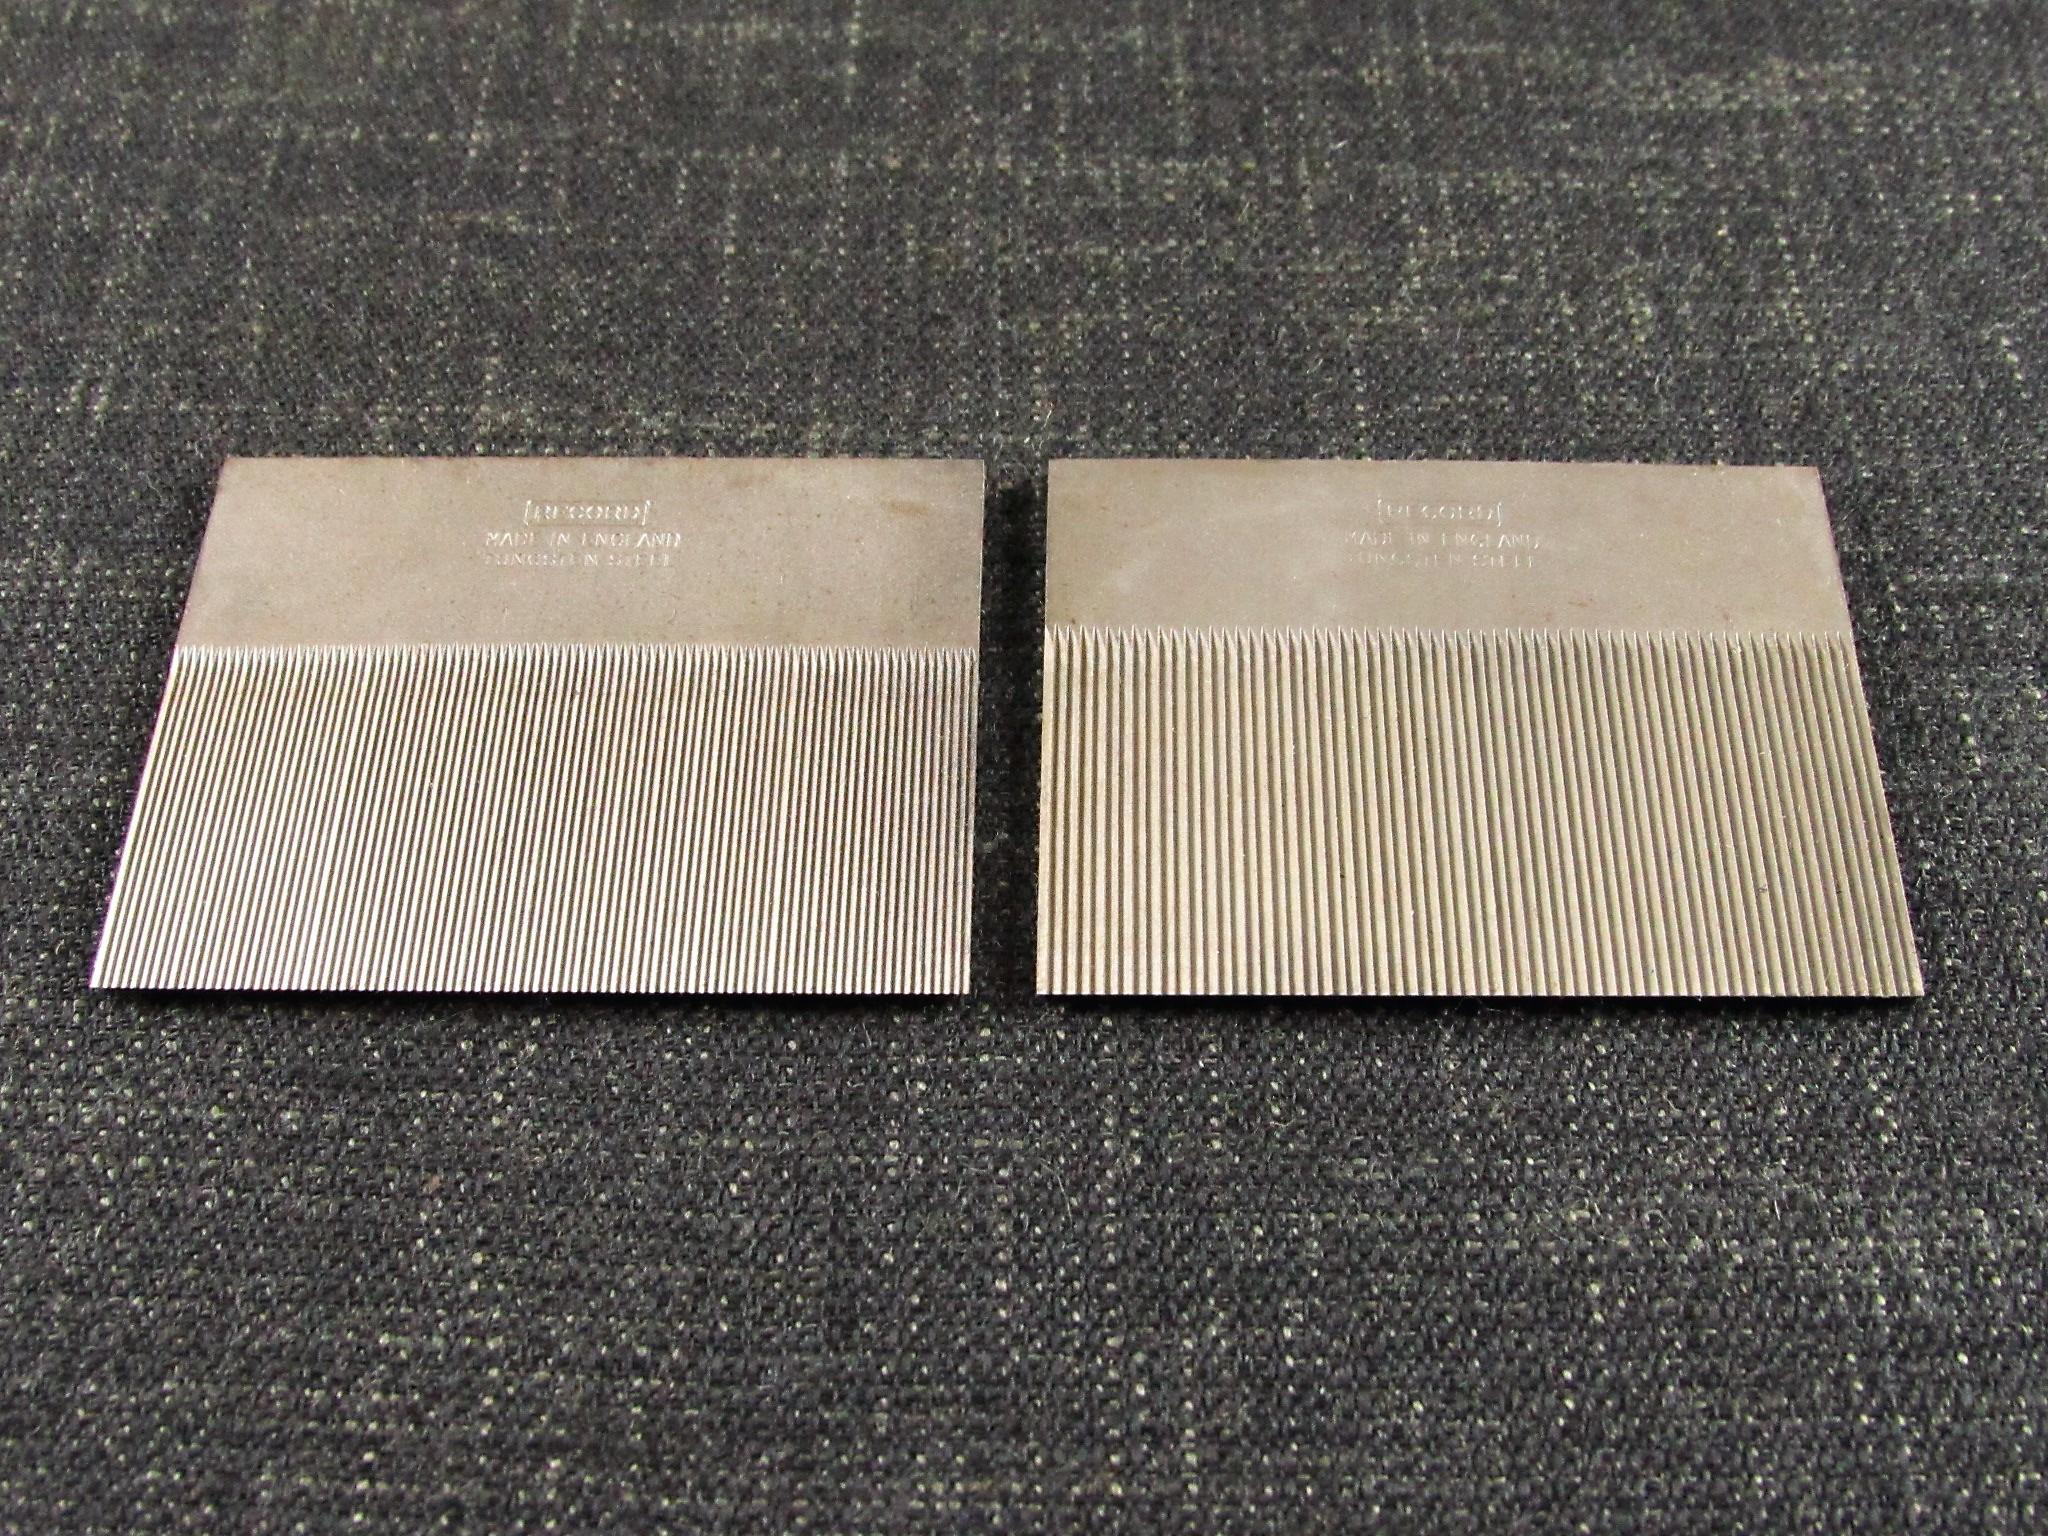 Very Rare Pair of Toothing Cutters for the RECORD 080 Cabinet Scraper - Unused